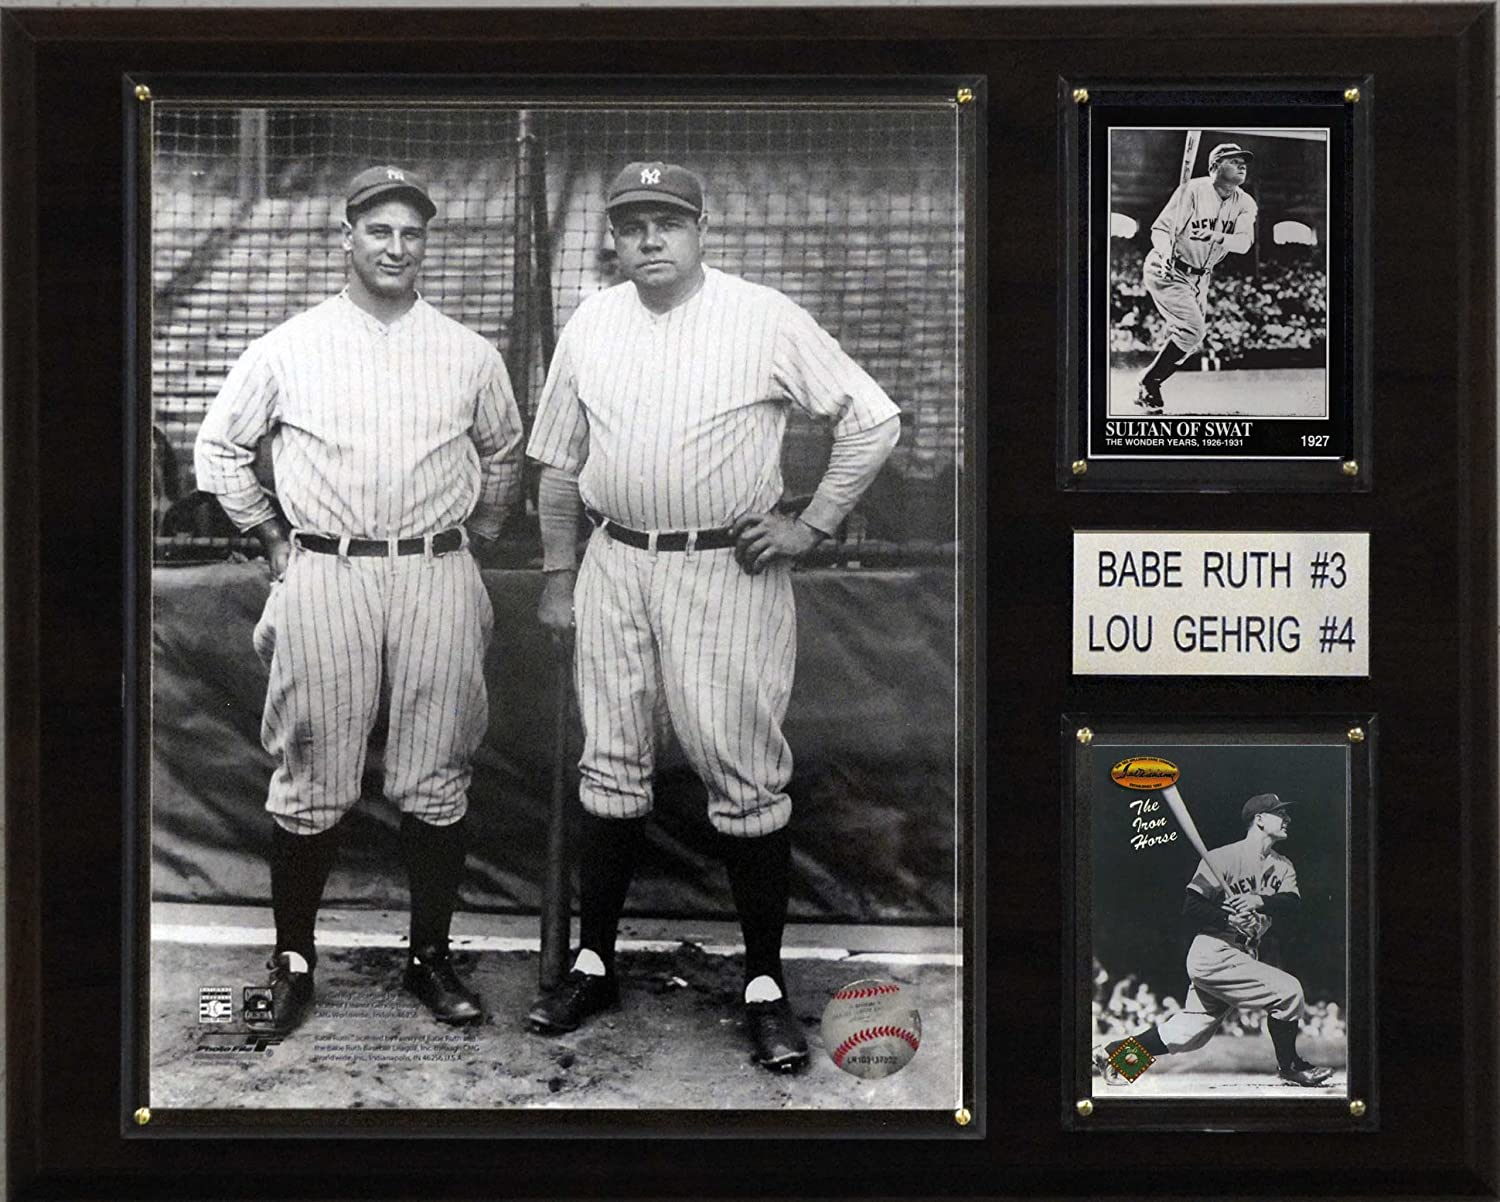 MLB New York Yankees Mantle-Ruth Legacy Collection Plaque 12 x 15-Inch